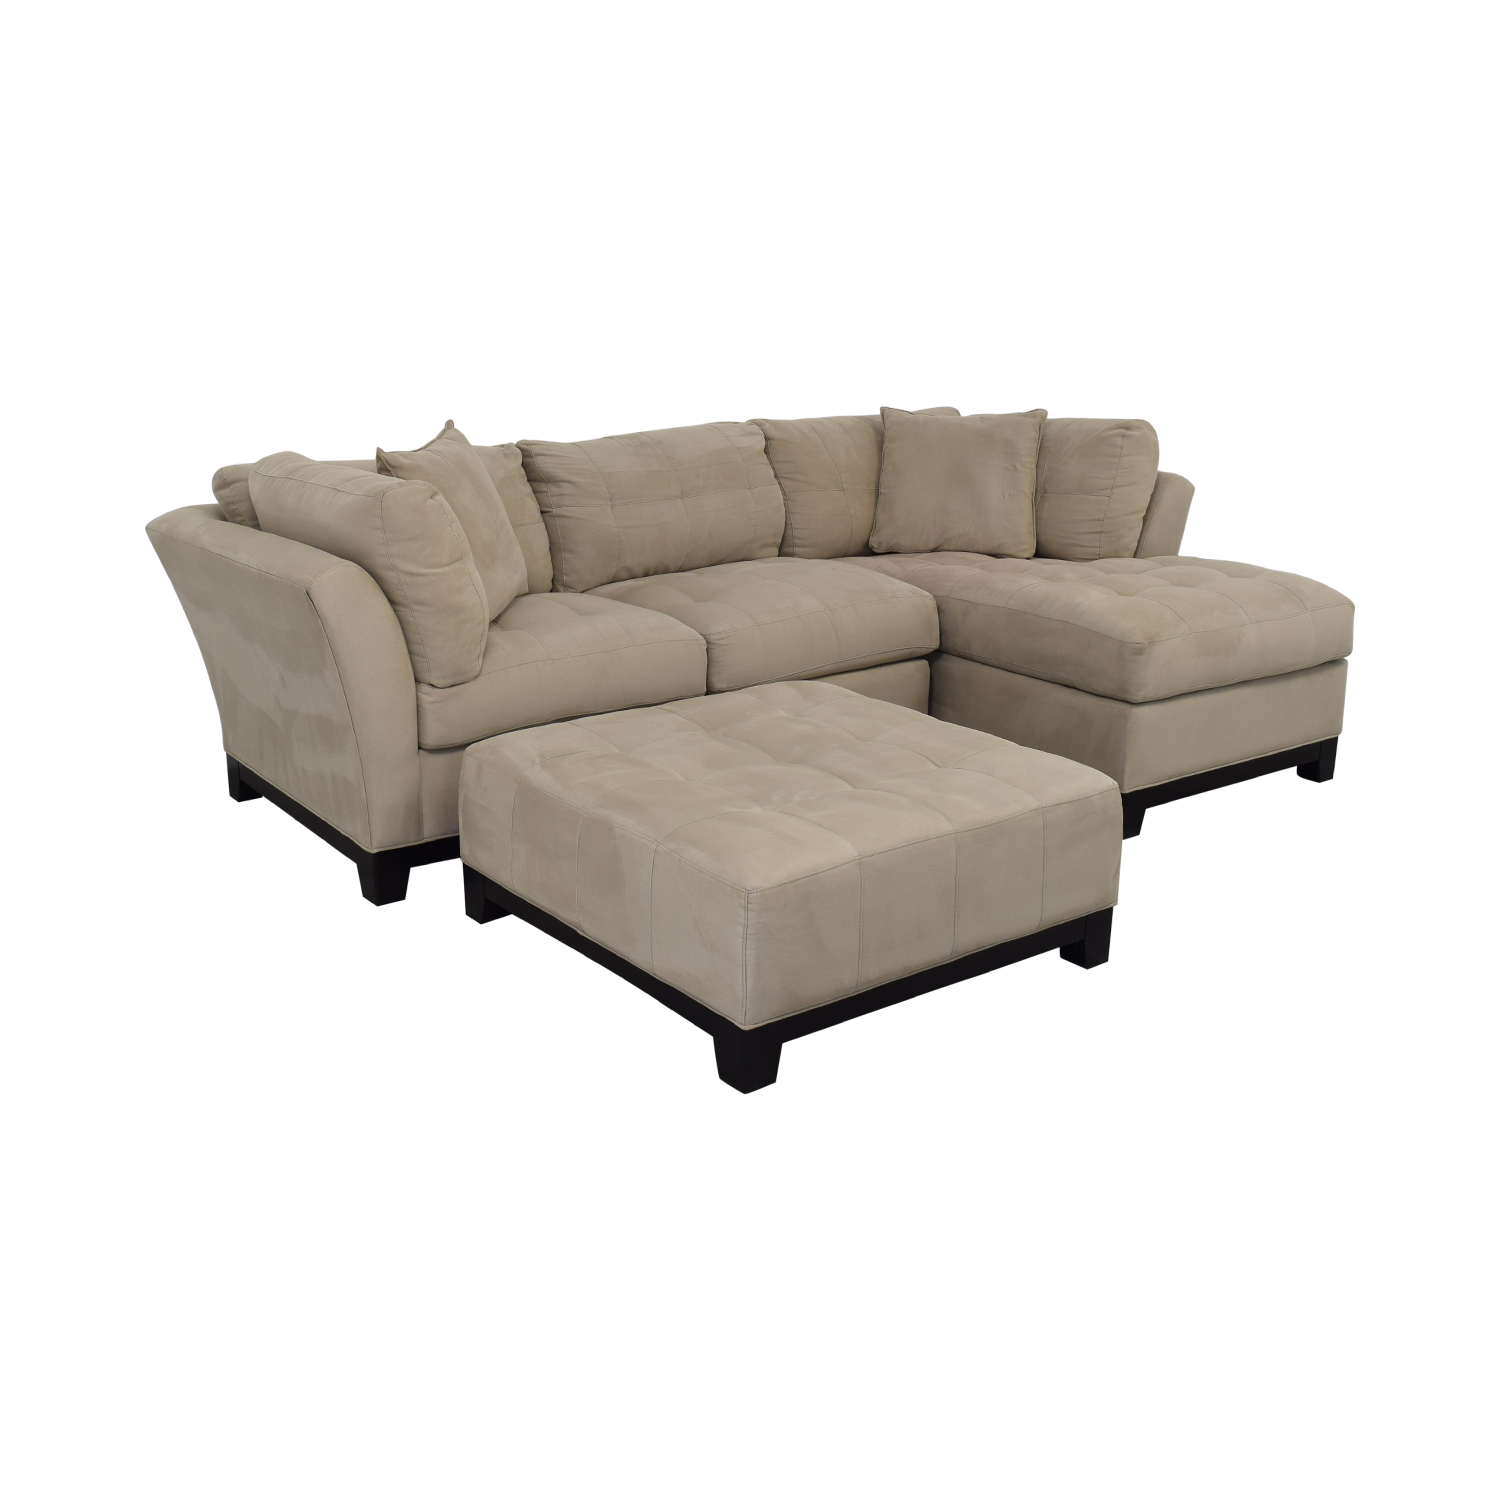 62% OFF - Raymour & Flanigan Raymour & Flanigan Sectional Sofa with ...